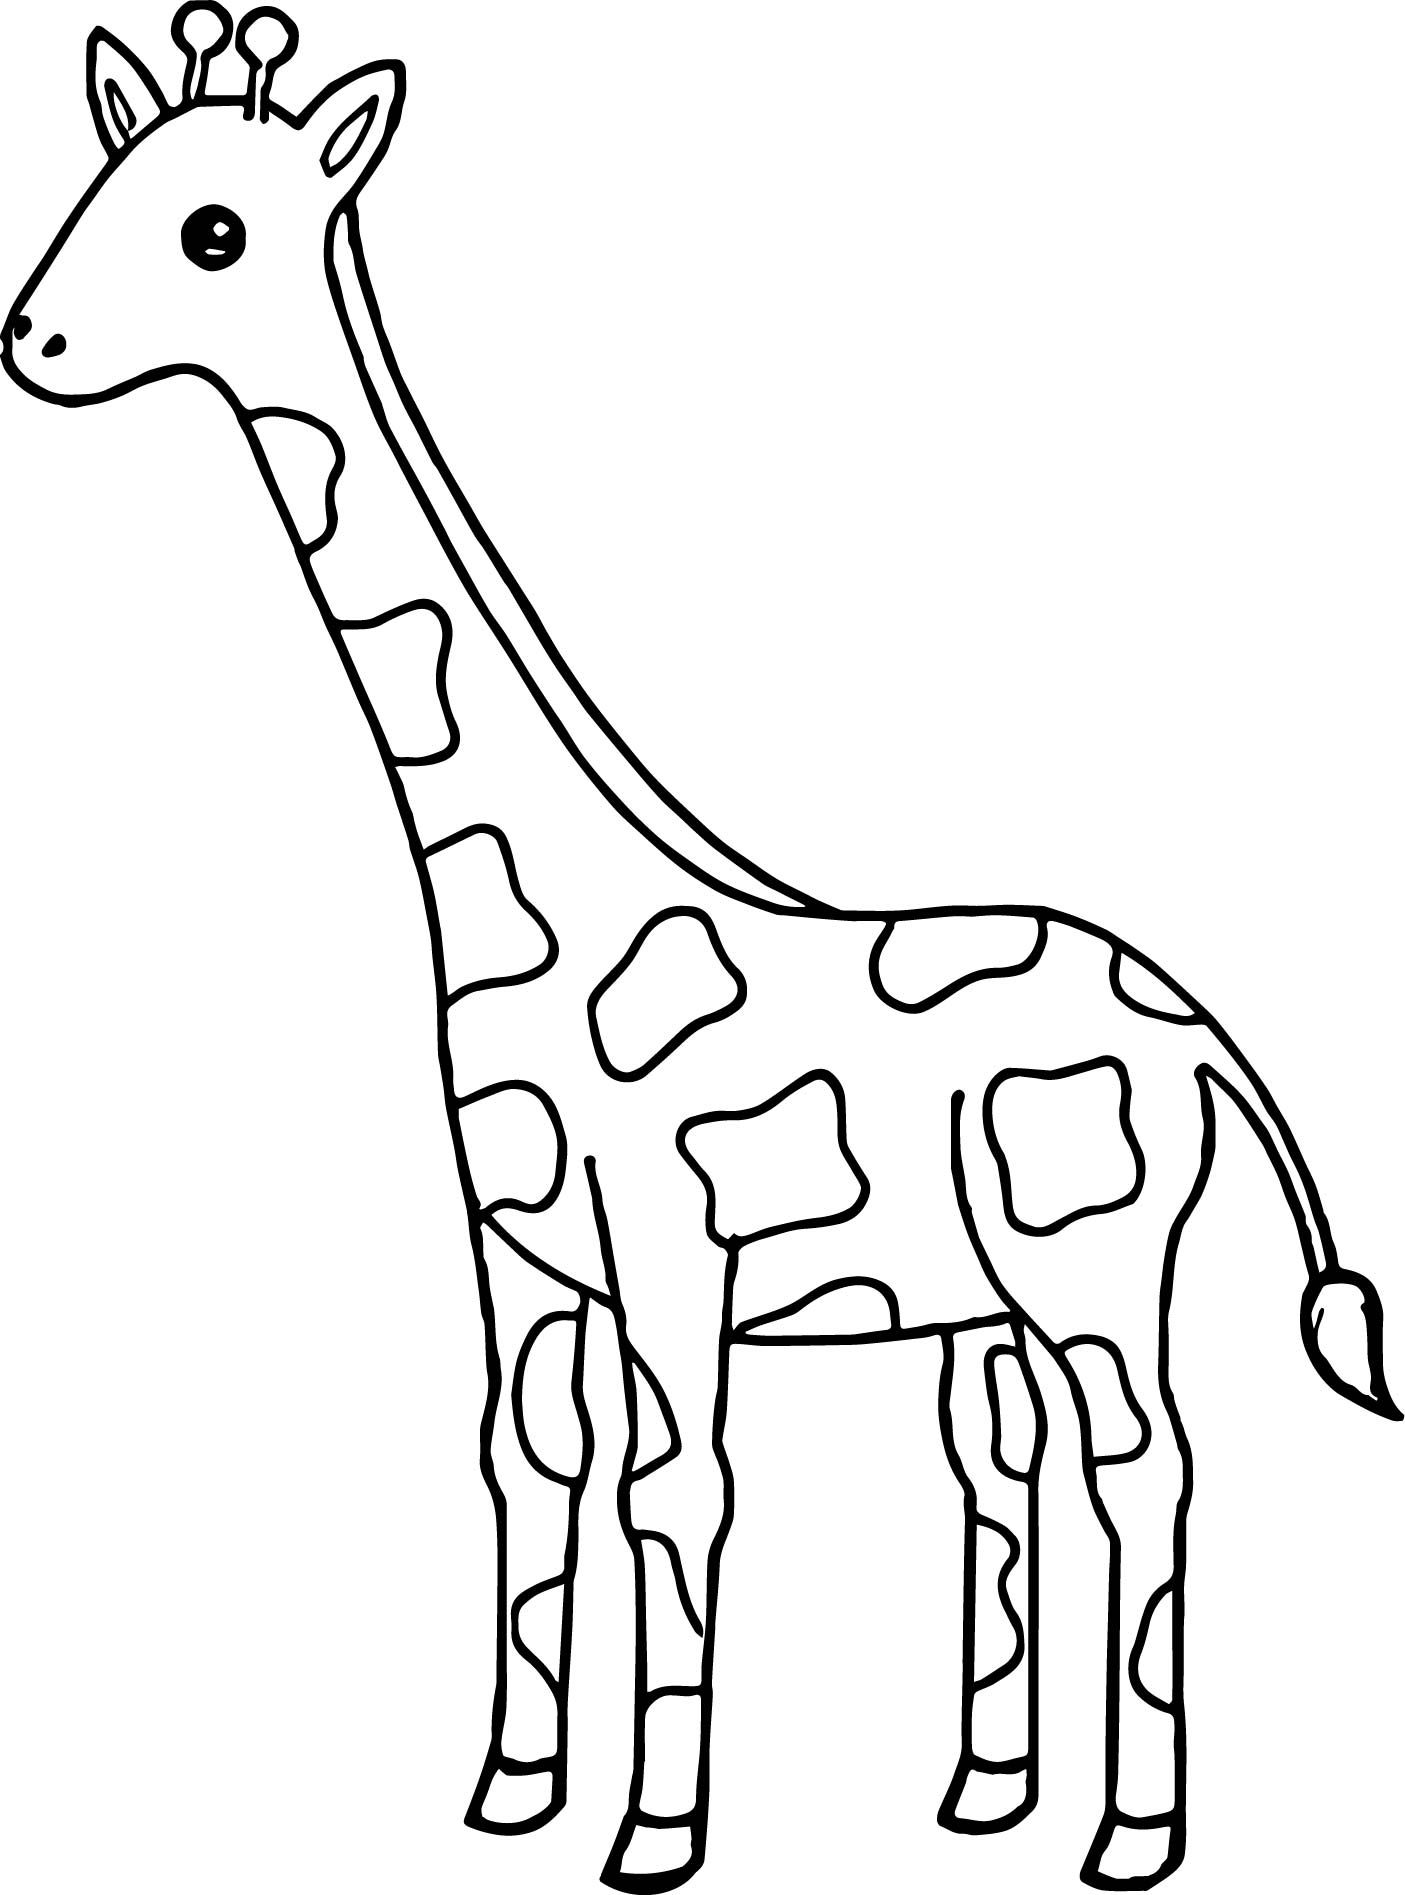 nice tall giraffe coloring page wecoloringpage giraffe coloring pages giraffe drawing giraffe. Black Bedroom Furniture Sets. Home Design Ideas